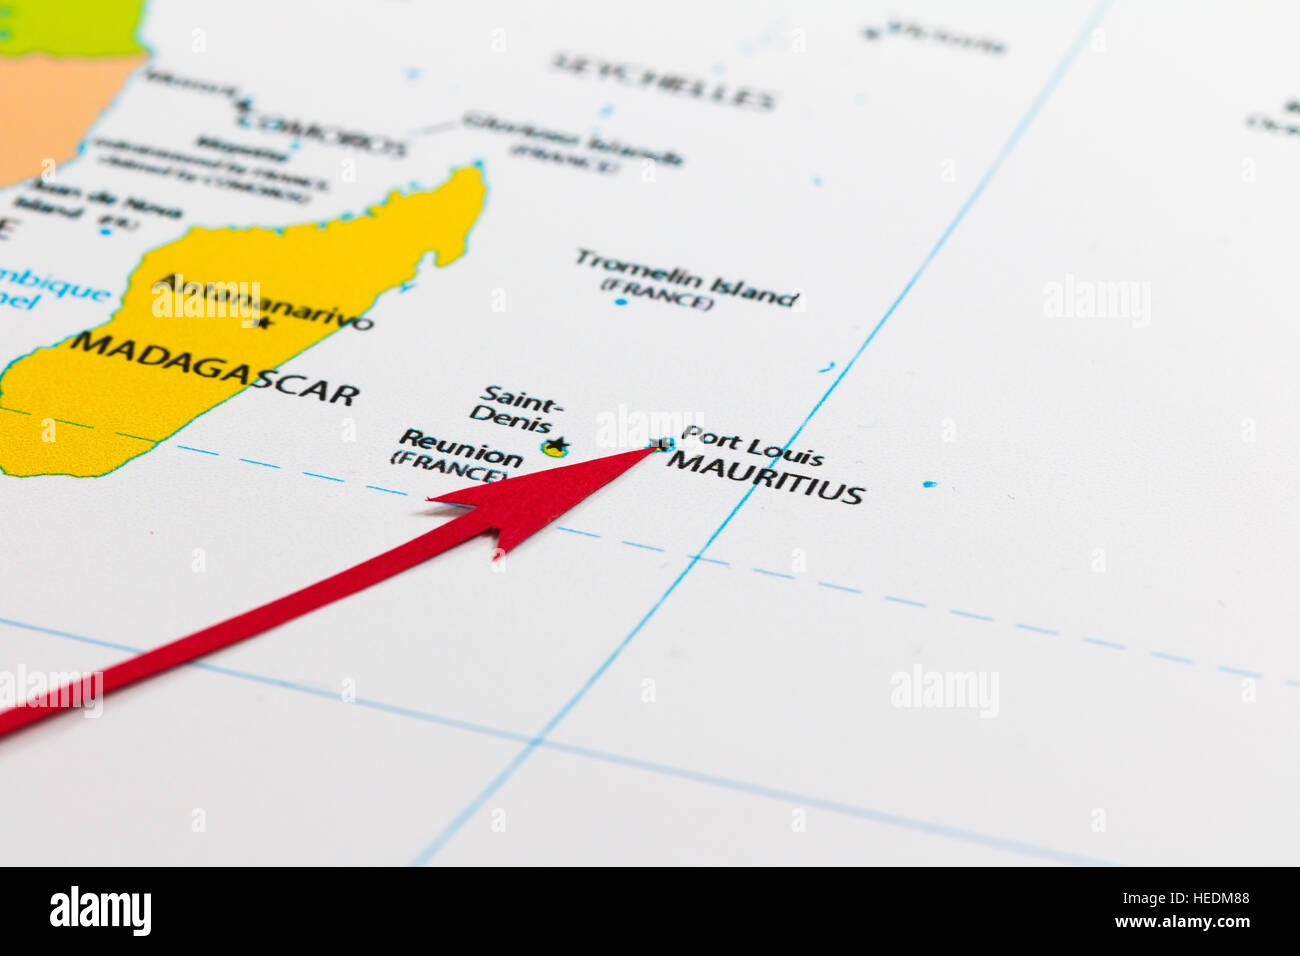 red arrow pointing mauritius on the map of africa continent stock image